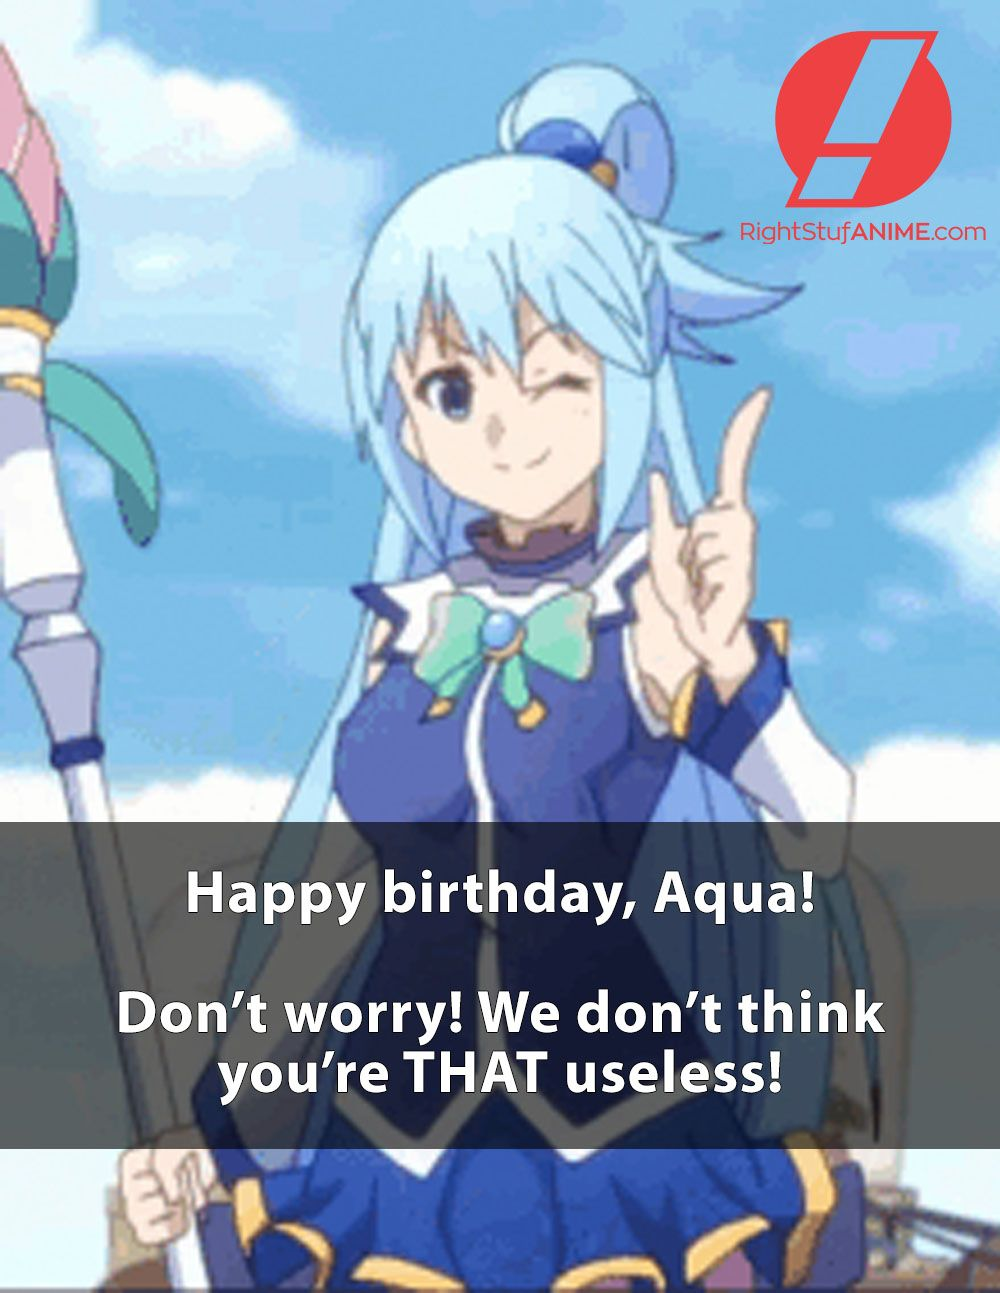 She's not THAT useless! Check out our Aqua items by